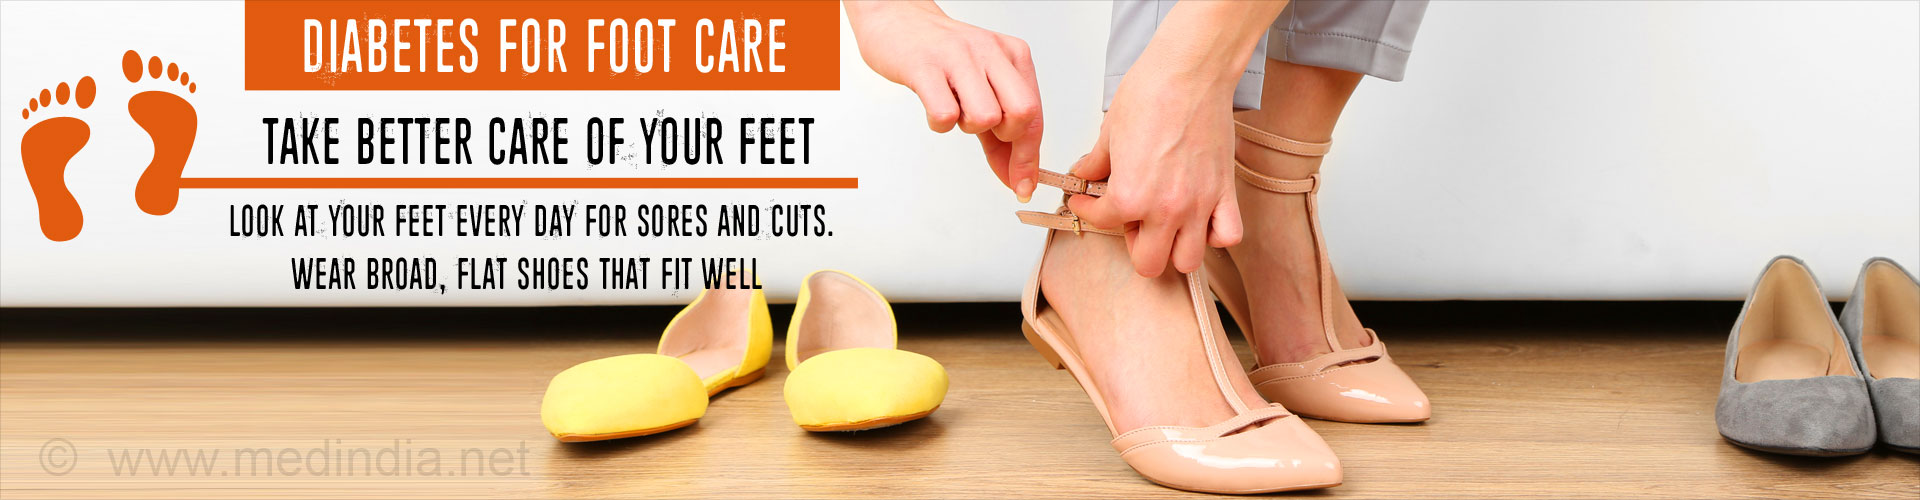 Diabetes For Foot Care - Take Better Care of Your Feet - Look at Your Feet Every Day For Sores and Cuts. Wear Broad, Flat Shoes That Fit Well